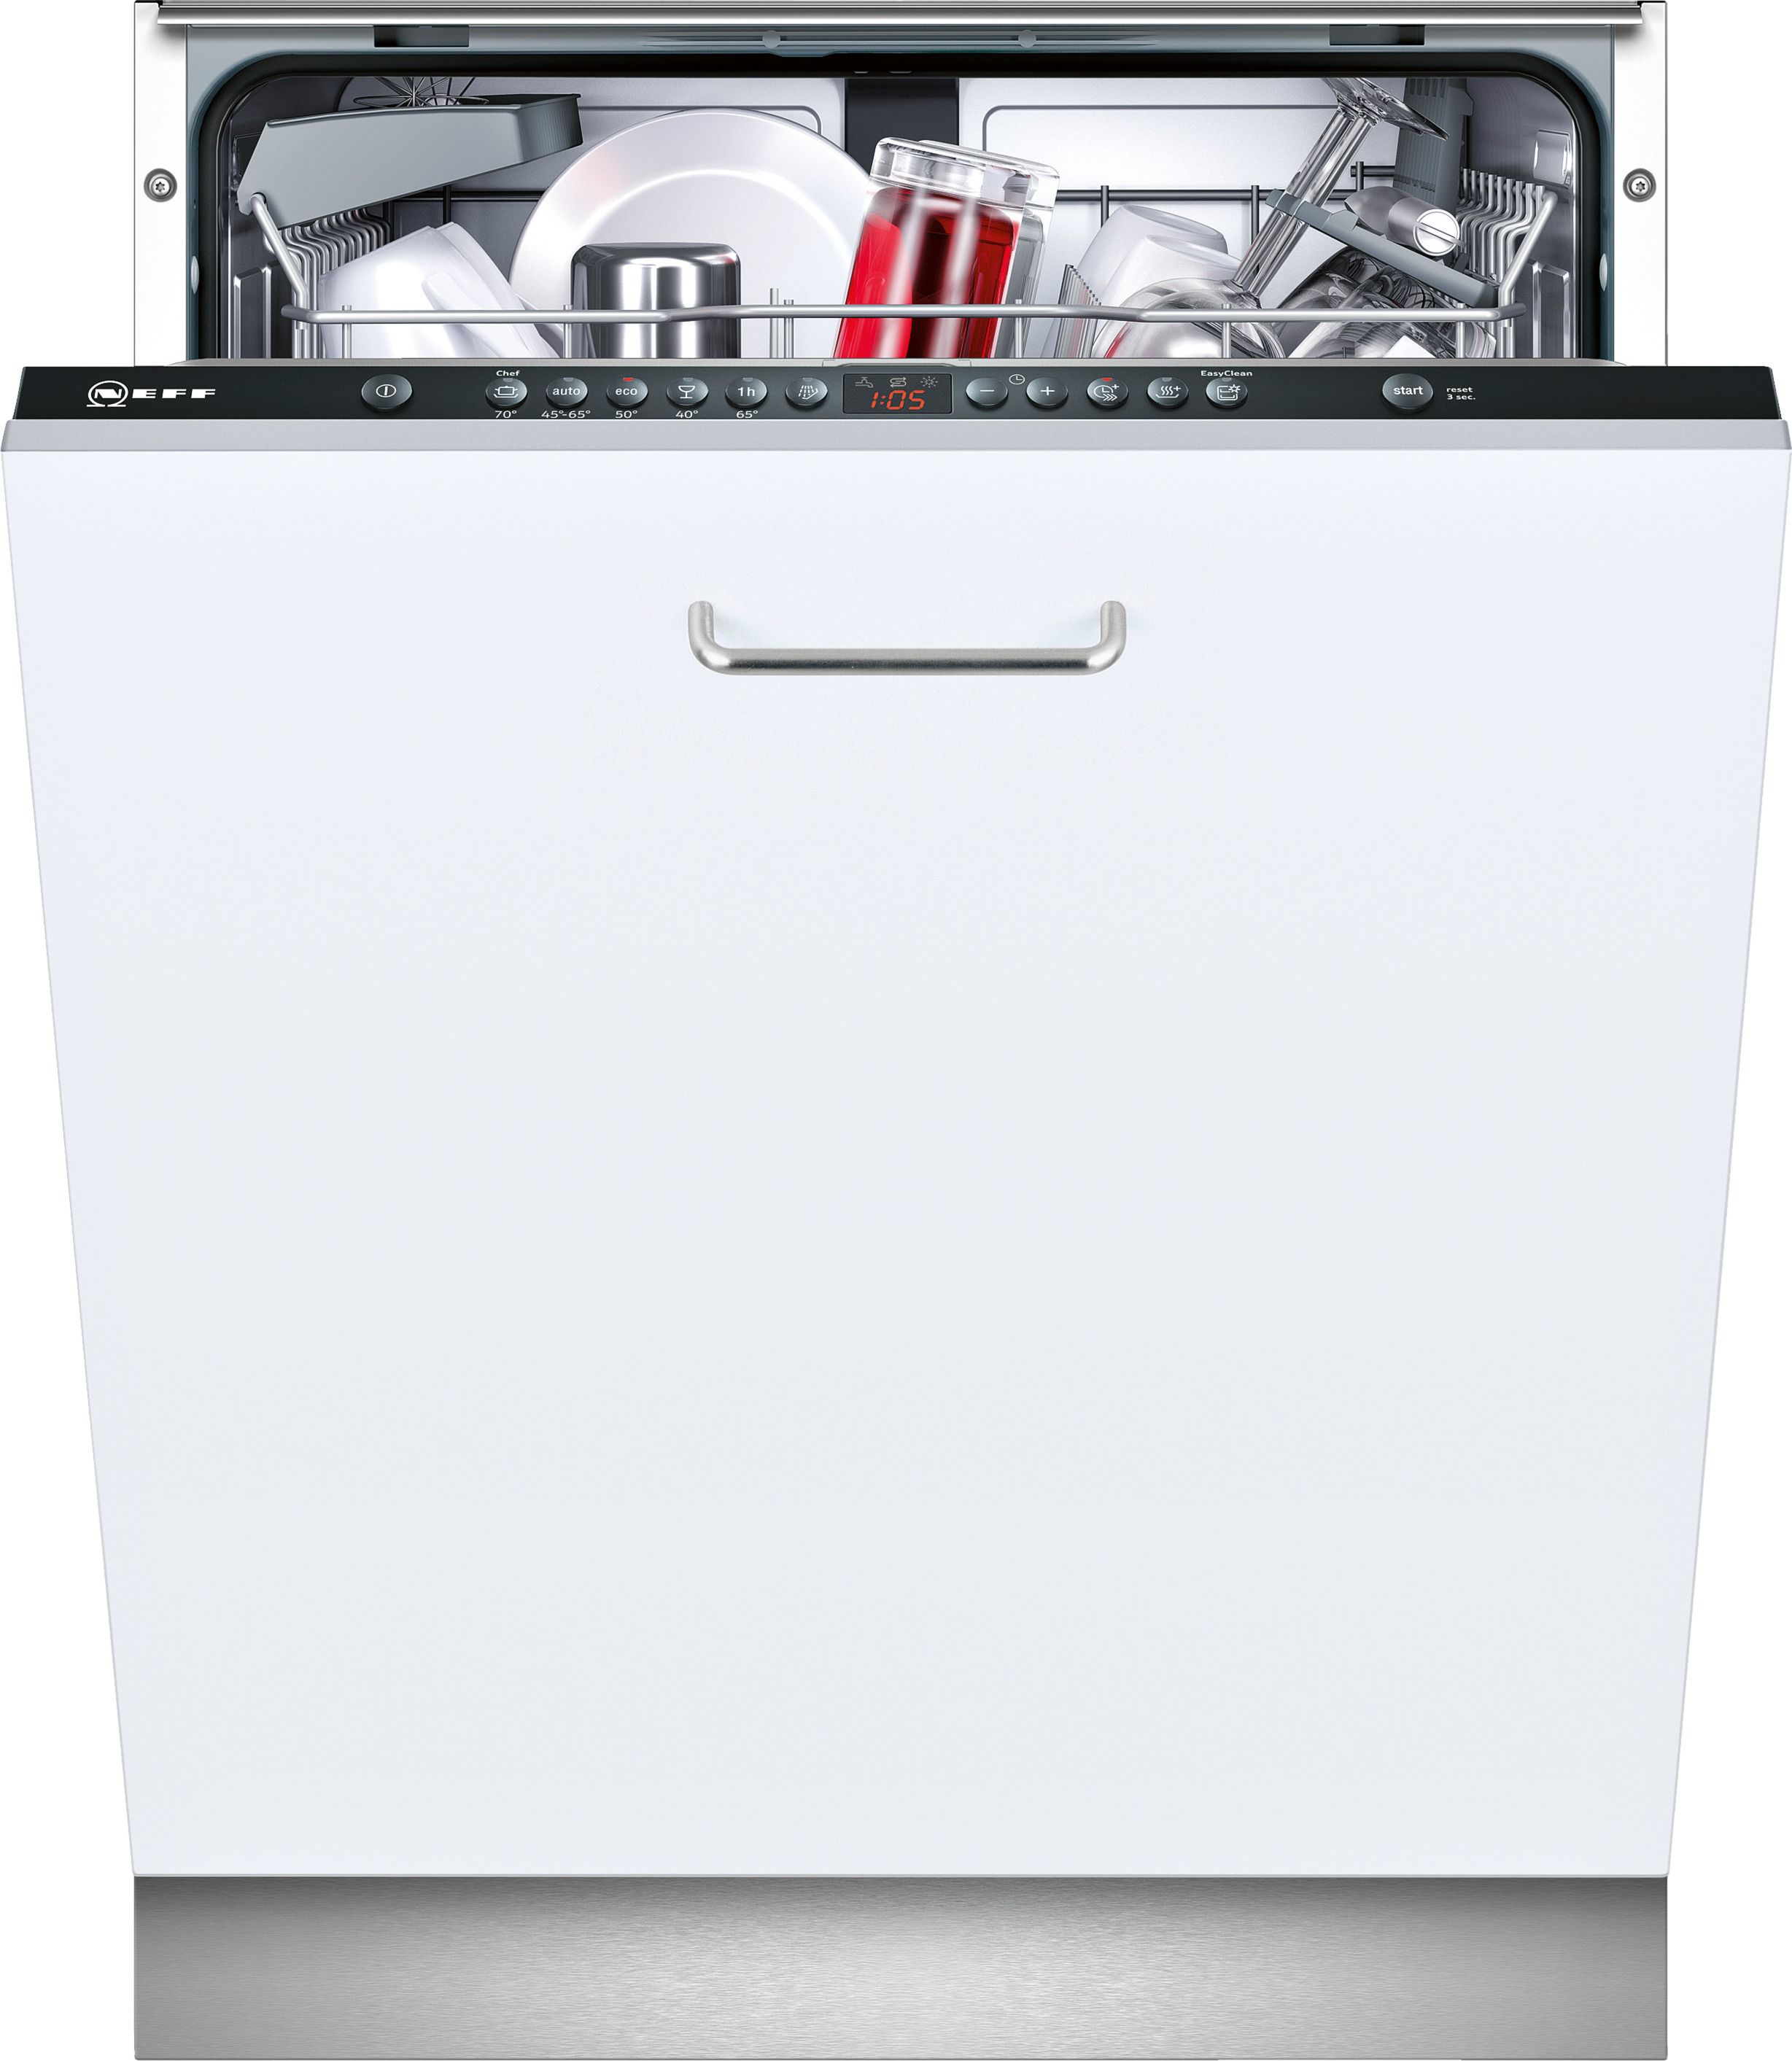 Neff S513g60x0g Integrated Built In Dishwasher White